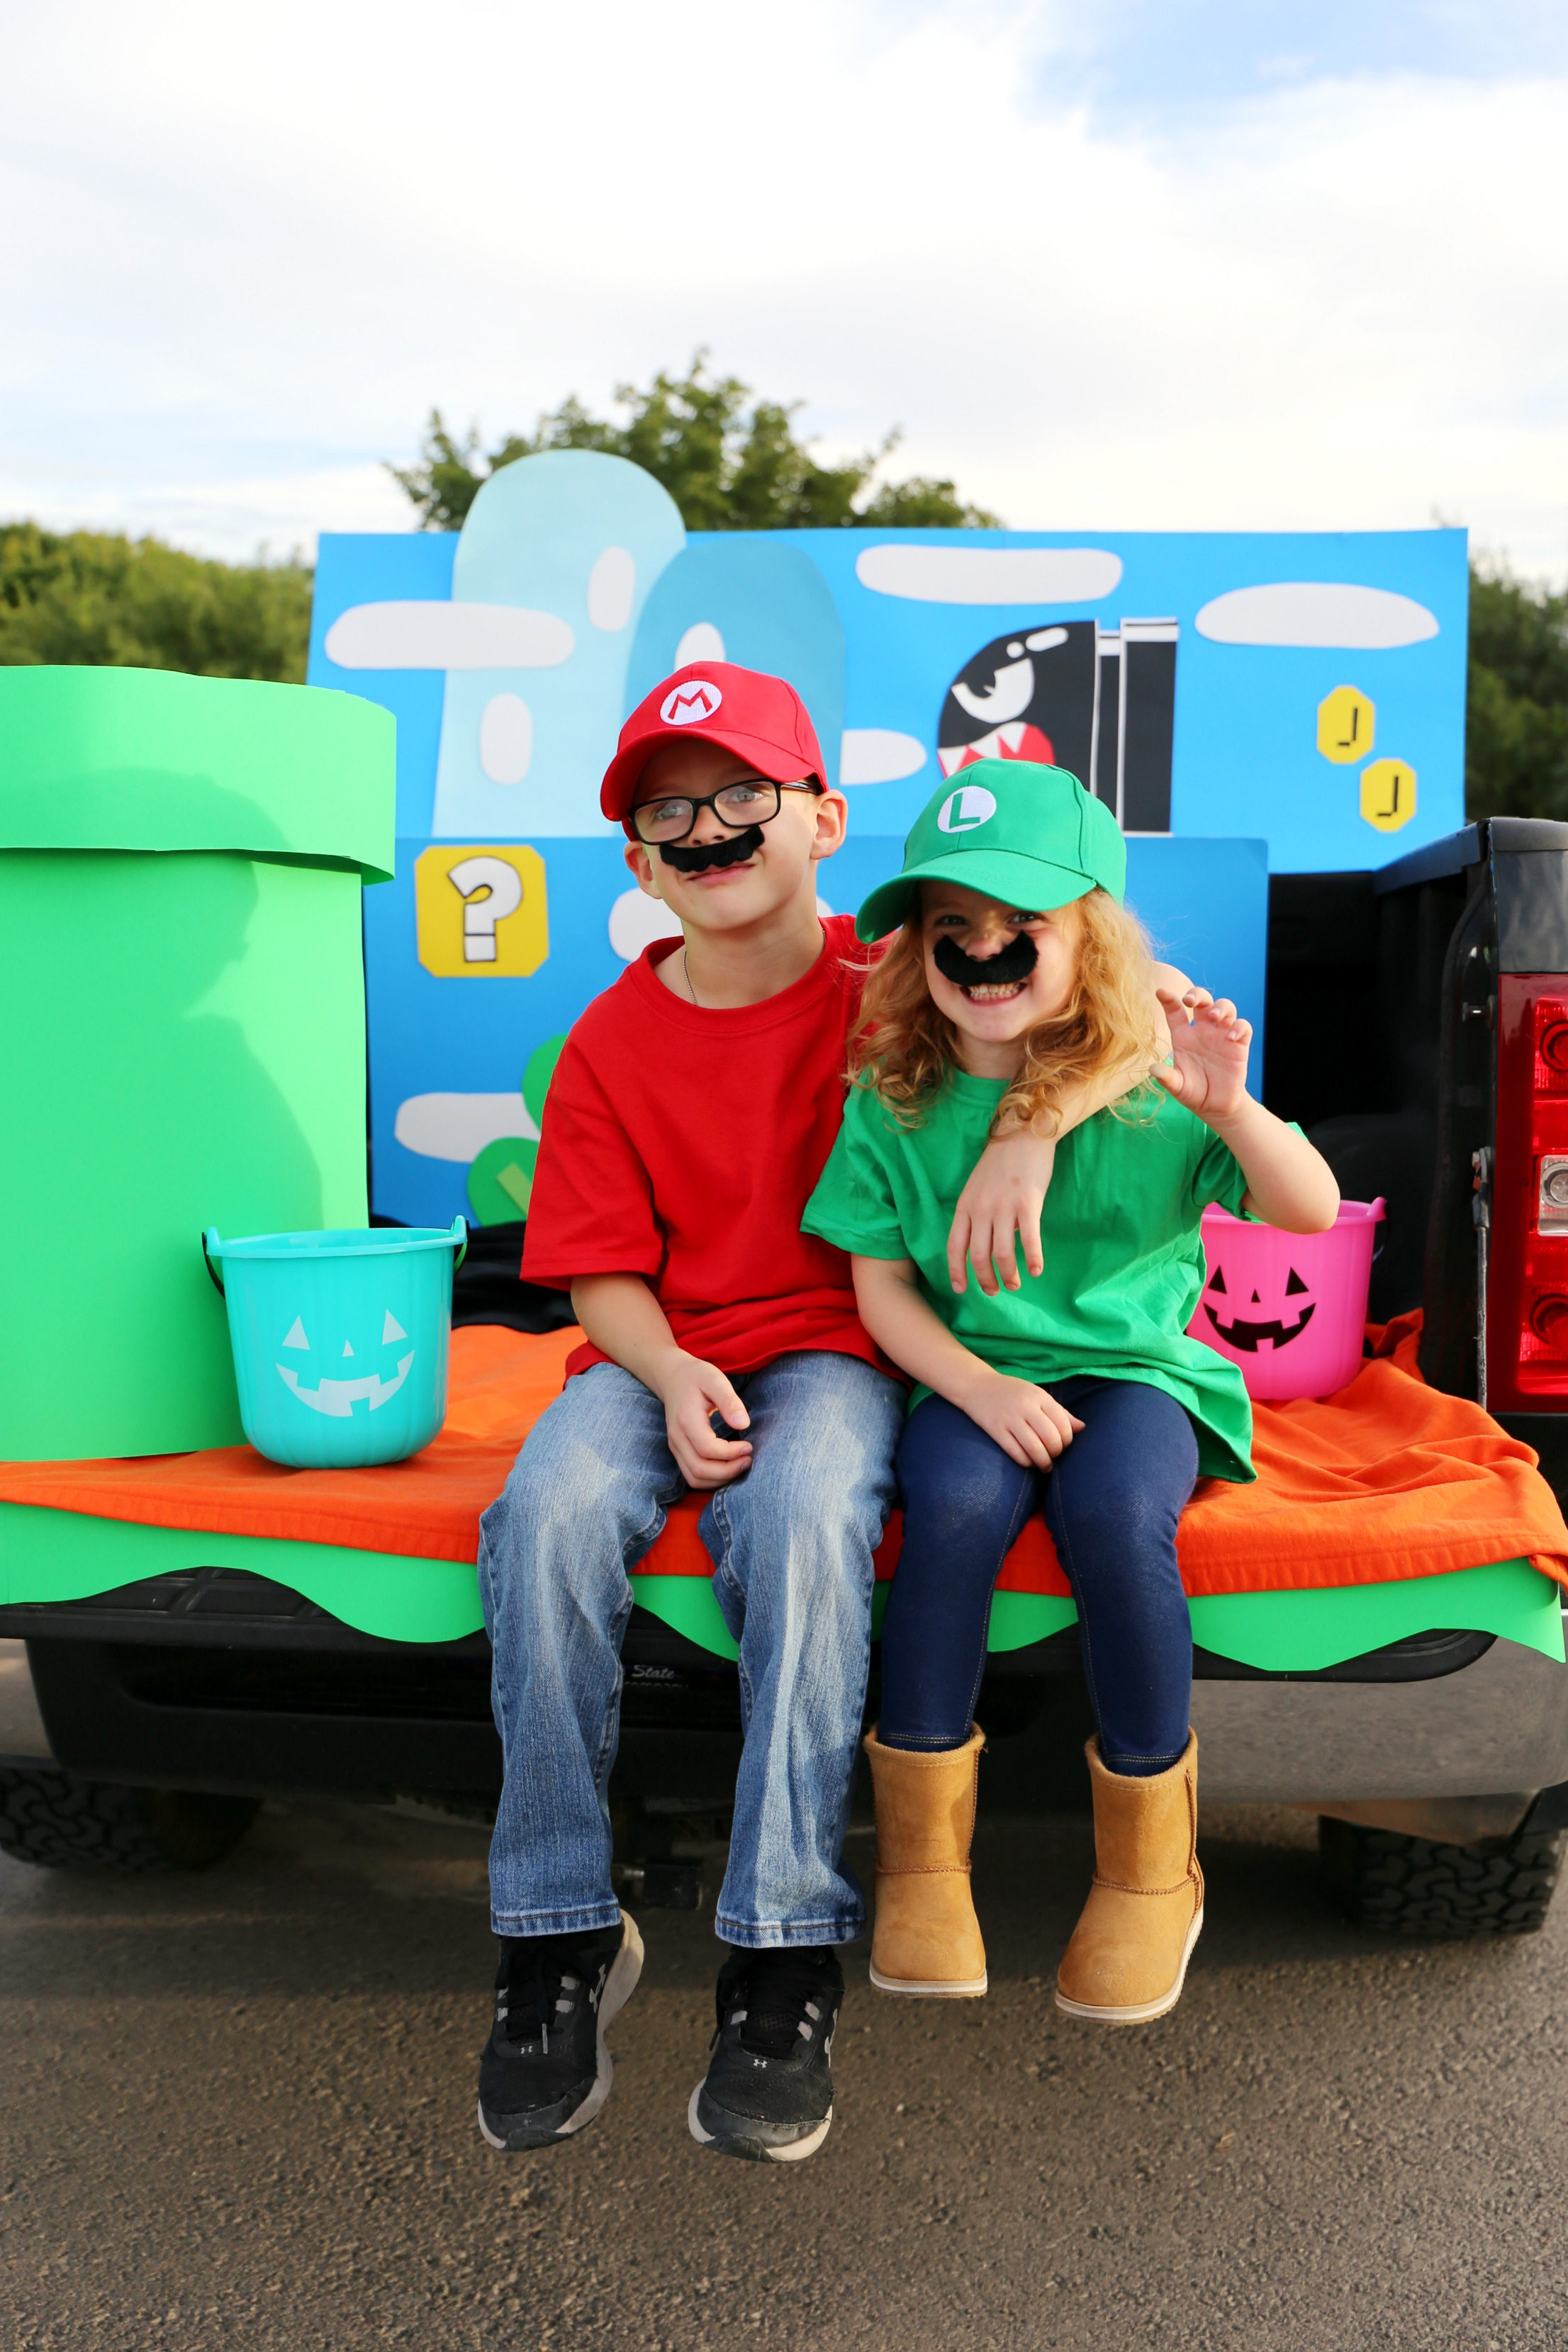 Super Mario Trunk or Treat Halloween Ideas plus Easy Mario, Luigi, and Princess Peach Costume Ideas